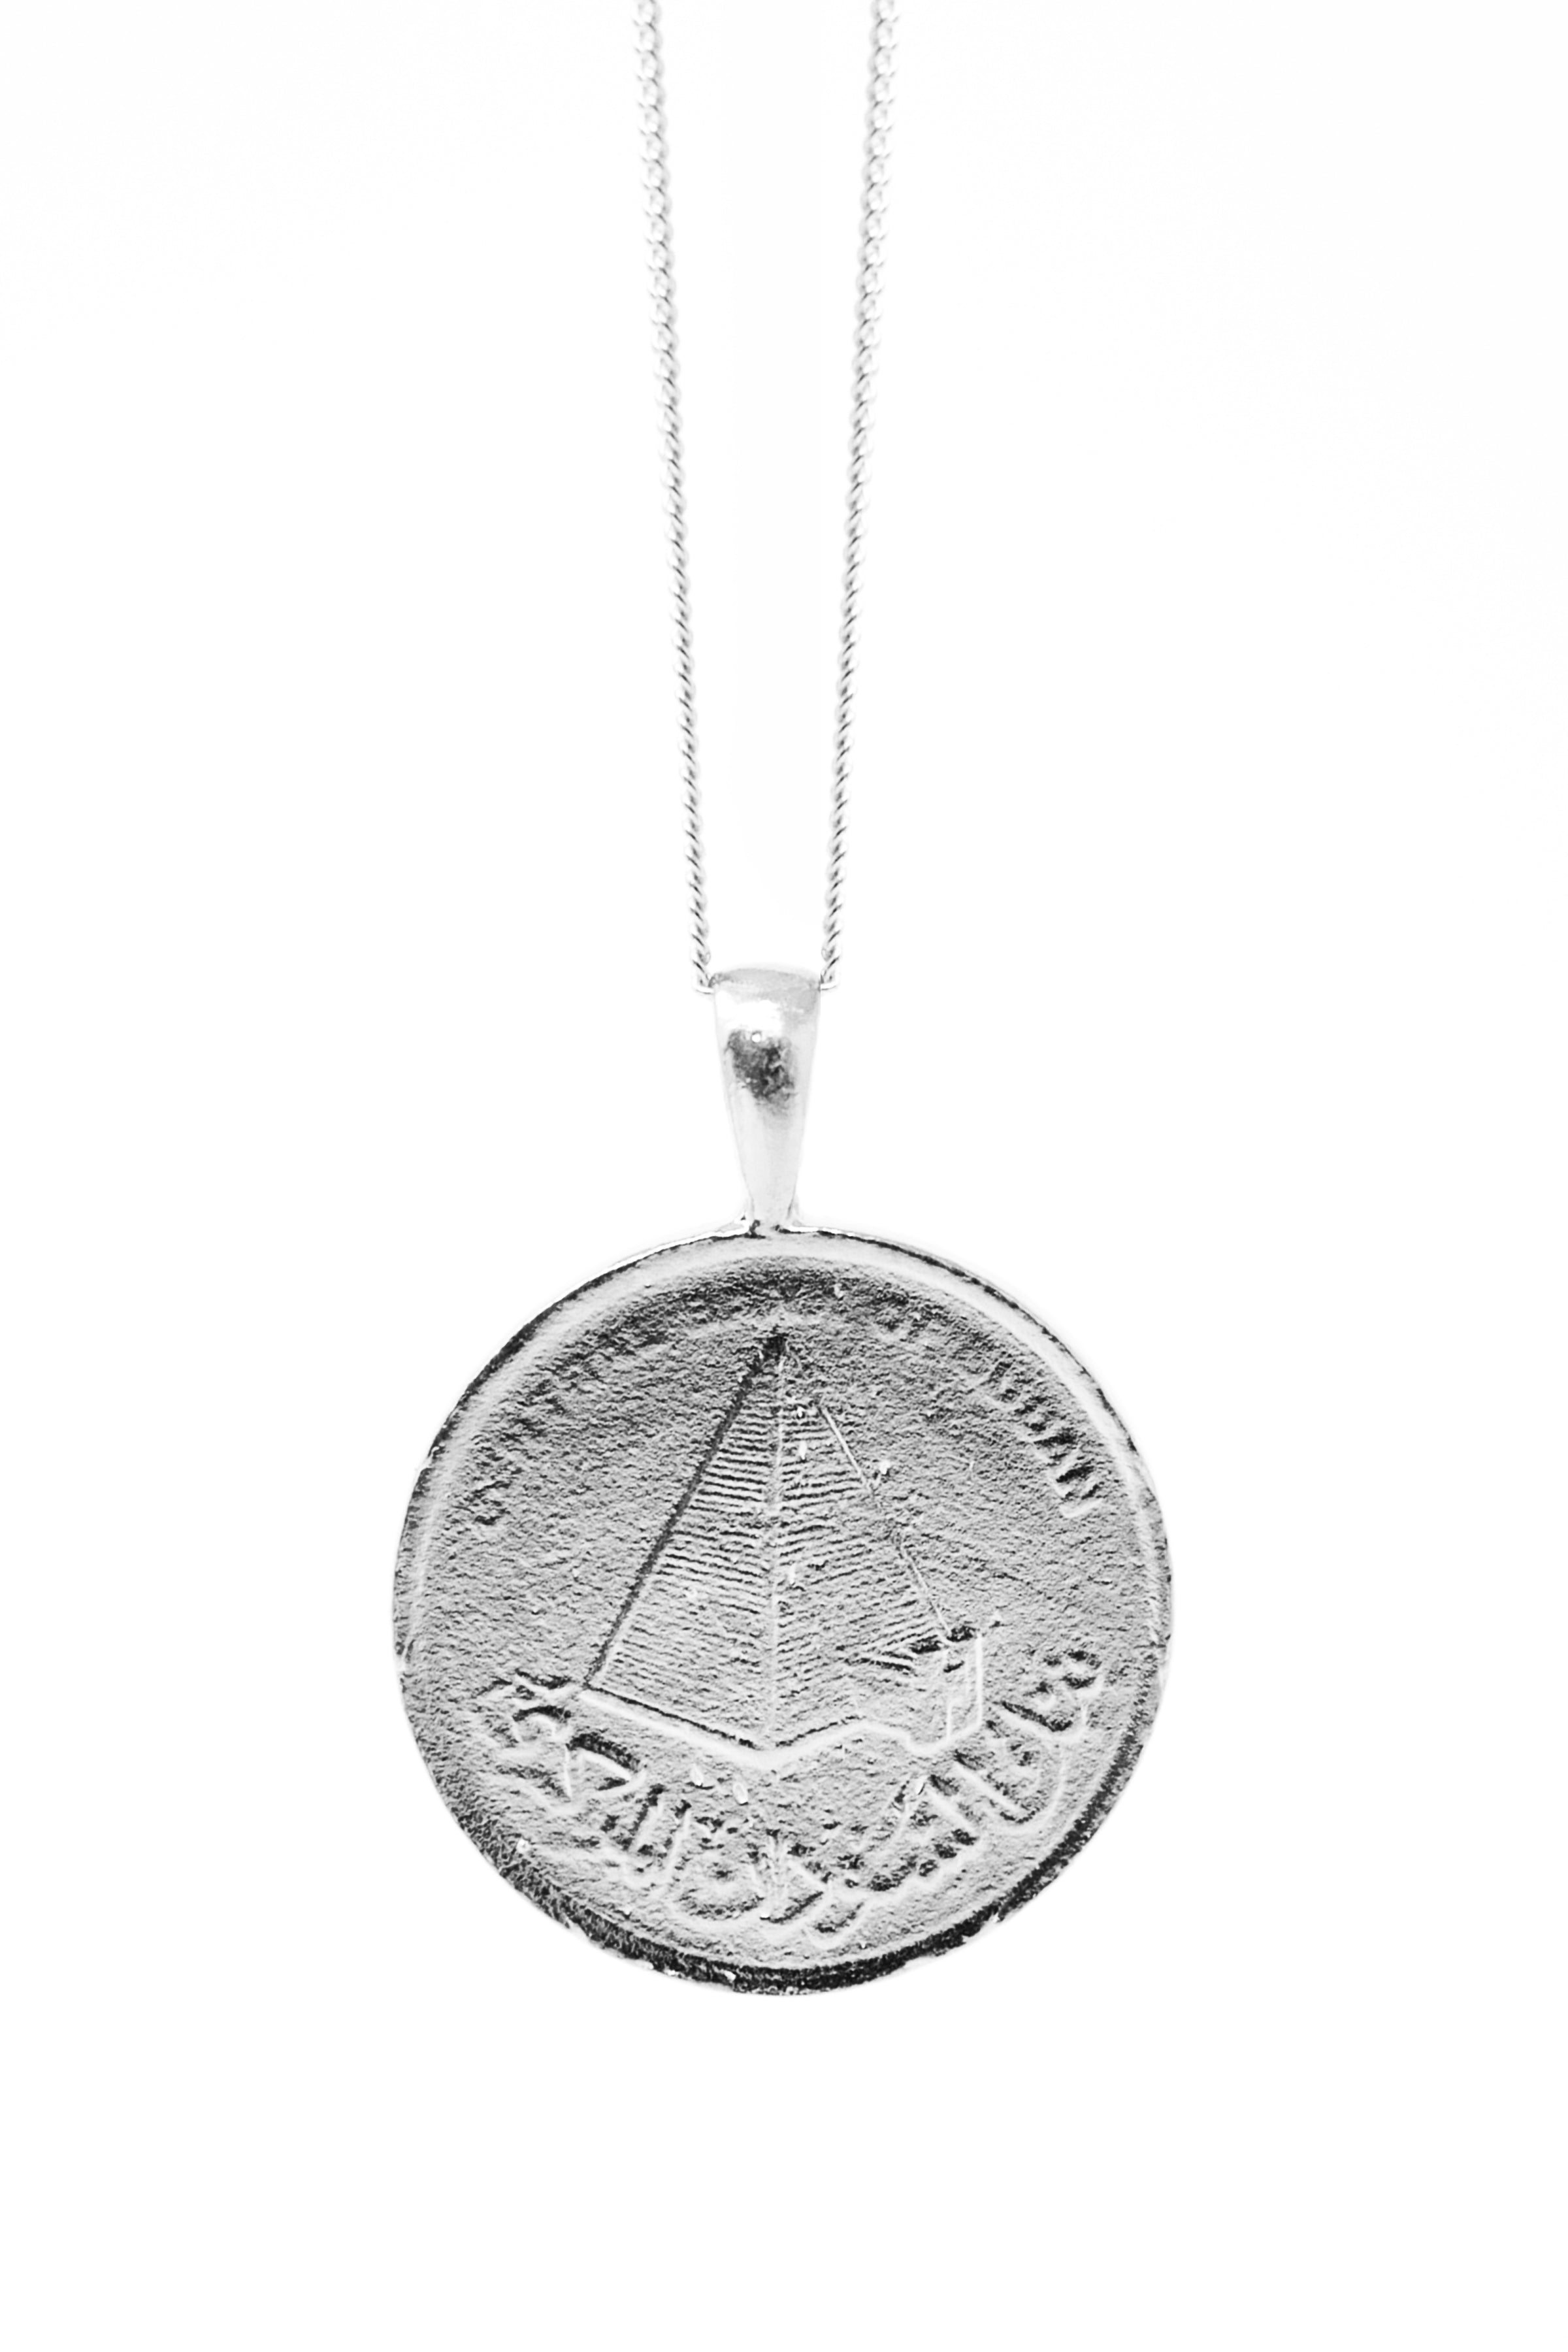 THE SUDAN Nubian Pyramid Coin Necklace